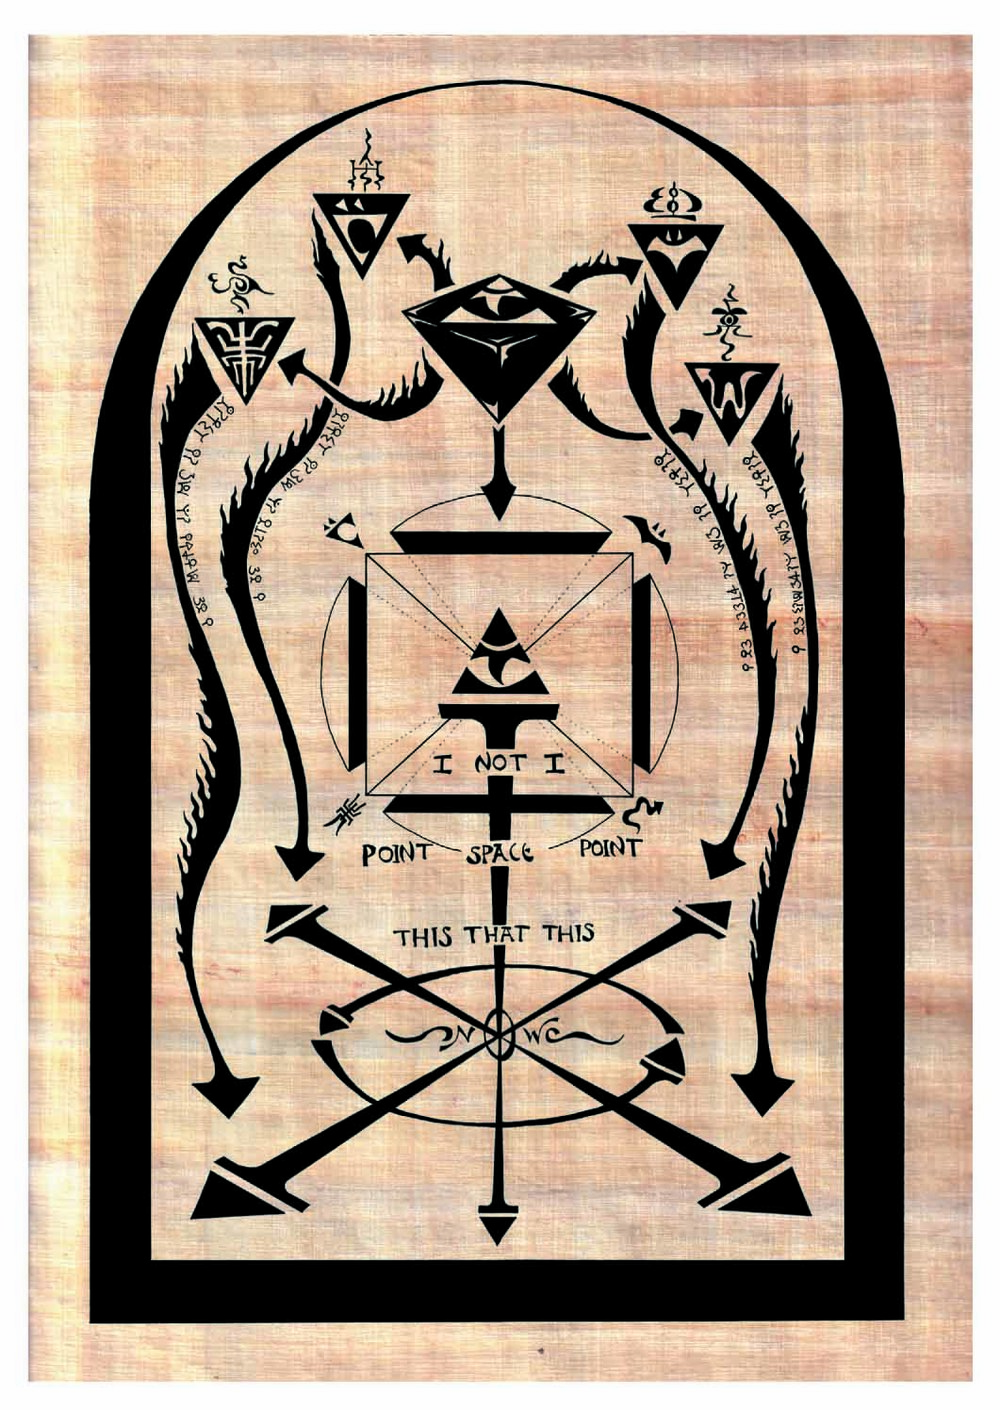 One of five plates that featured in the Totemic Invocation of the Shadow Selves by Jack Macbeth, 2002. This specific diagram details the role of the 'Black Stone' as central fetish/icon for the ritual. This image dates from 2001.